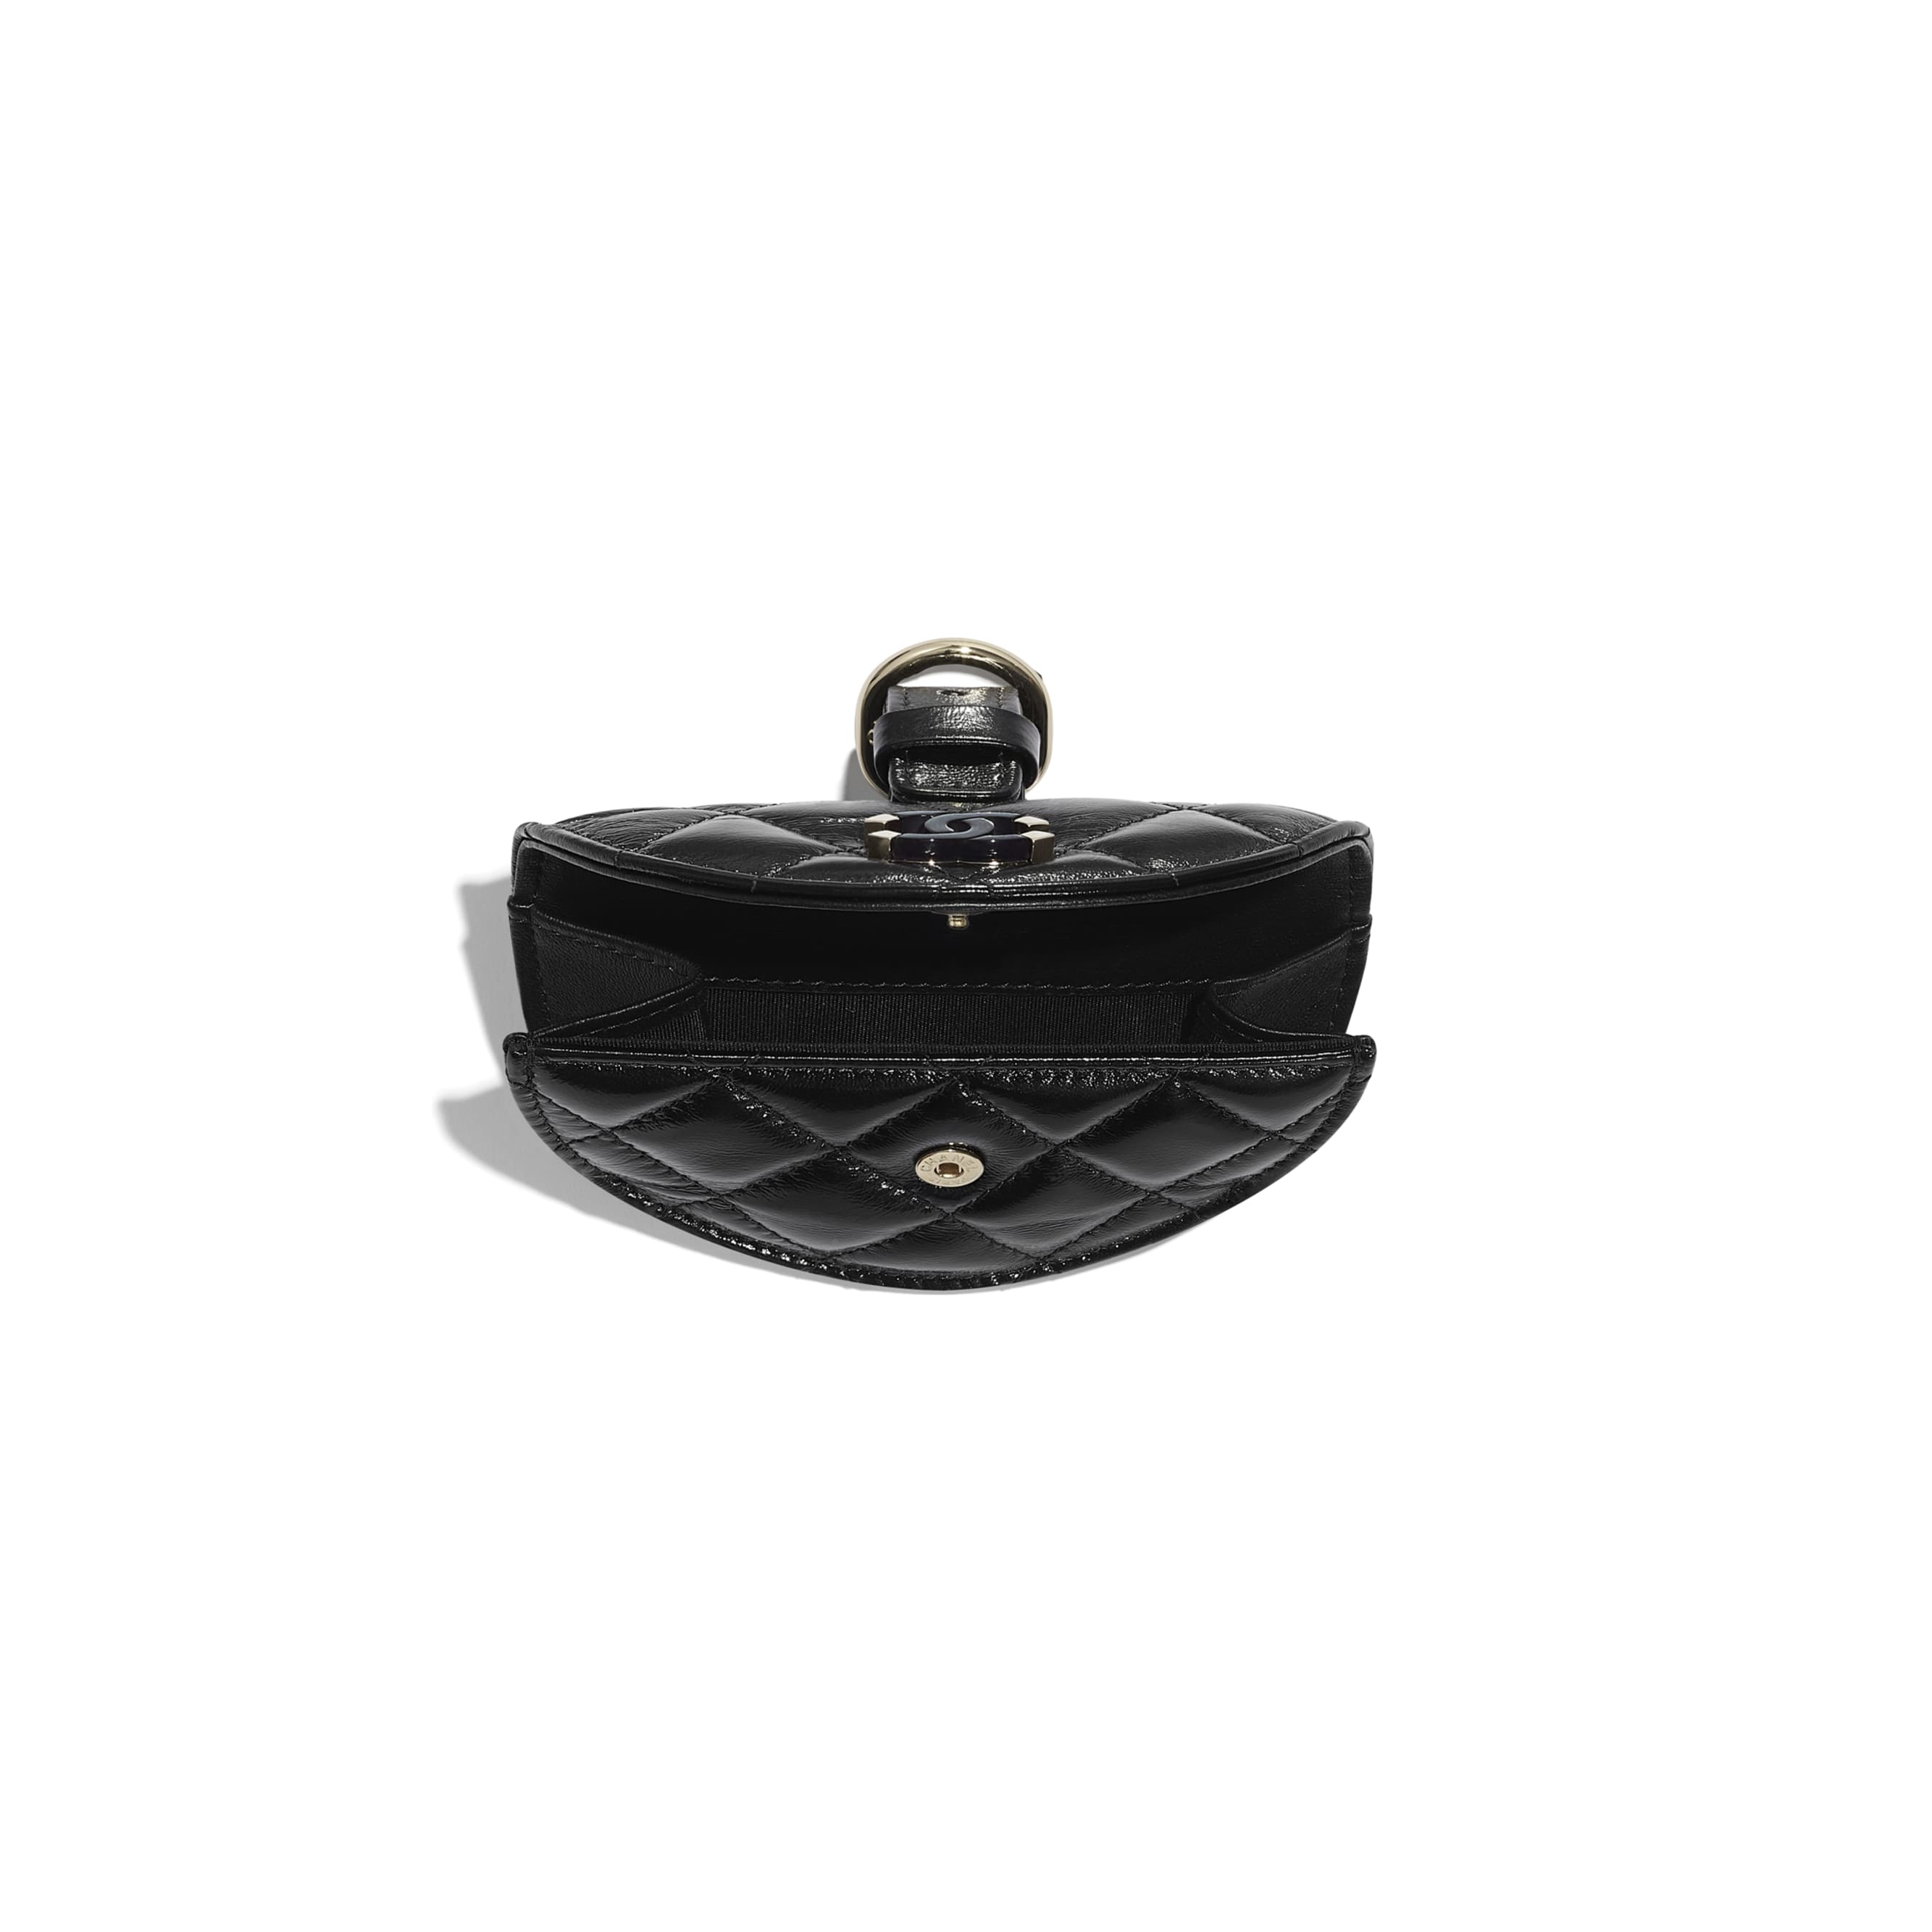 Flap Coin Purse Wristlet - Black - Shiny Crumpled Lambskin, Resin & Gold-Tone Metal - CHANEL - Other view - see standard sized version